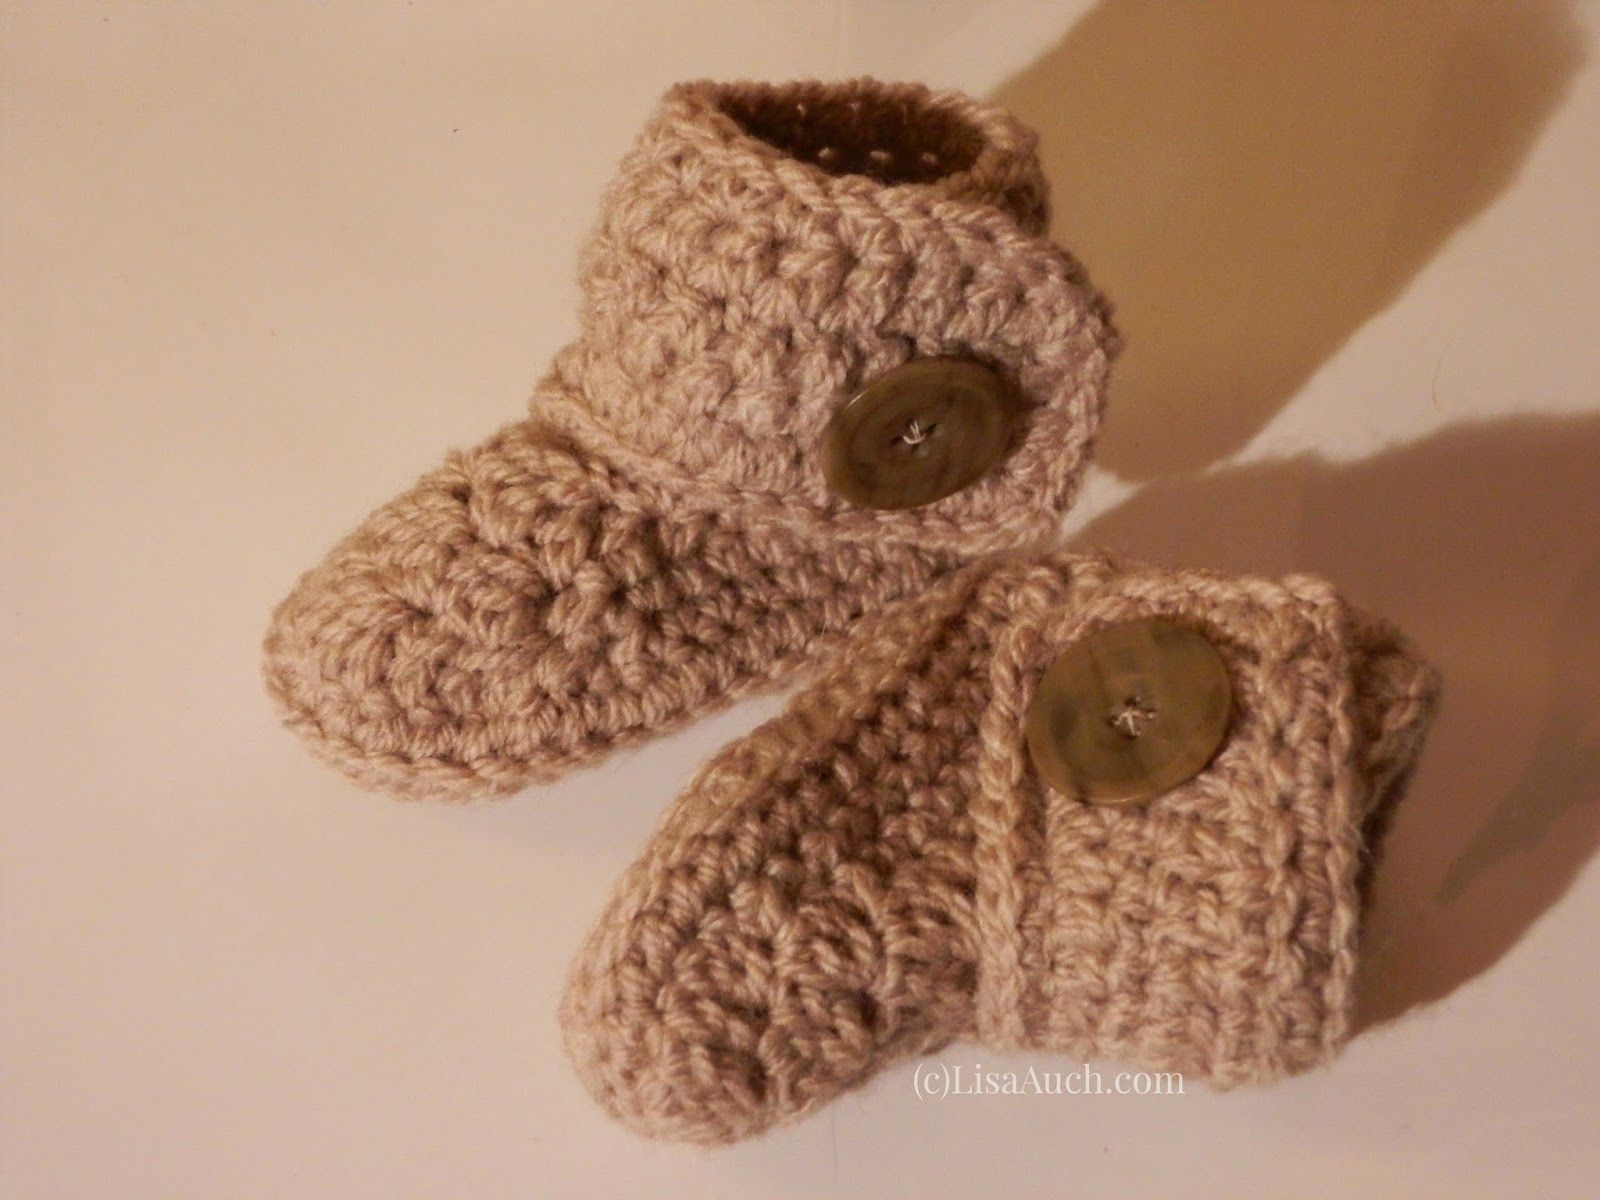 Crochet Booties Lovely Free Crochet Patterns and Designs by Lisaauch Free Of Wonderful 43 Pics Crochet Booties